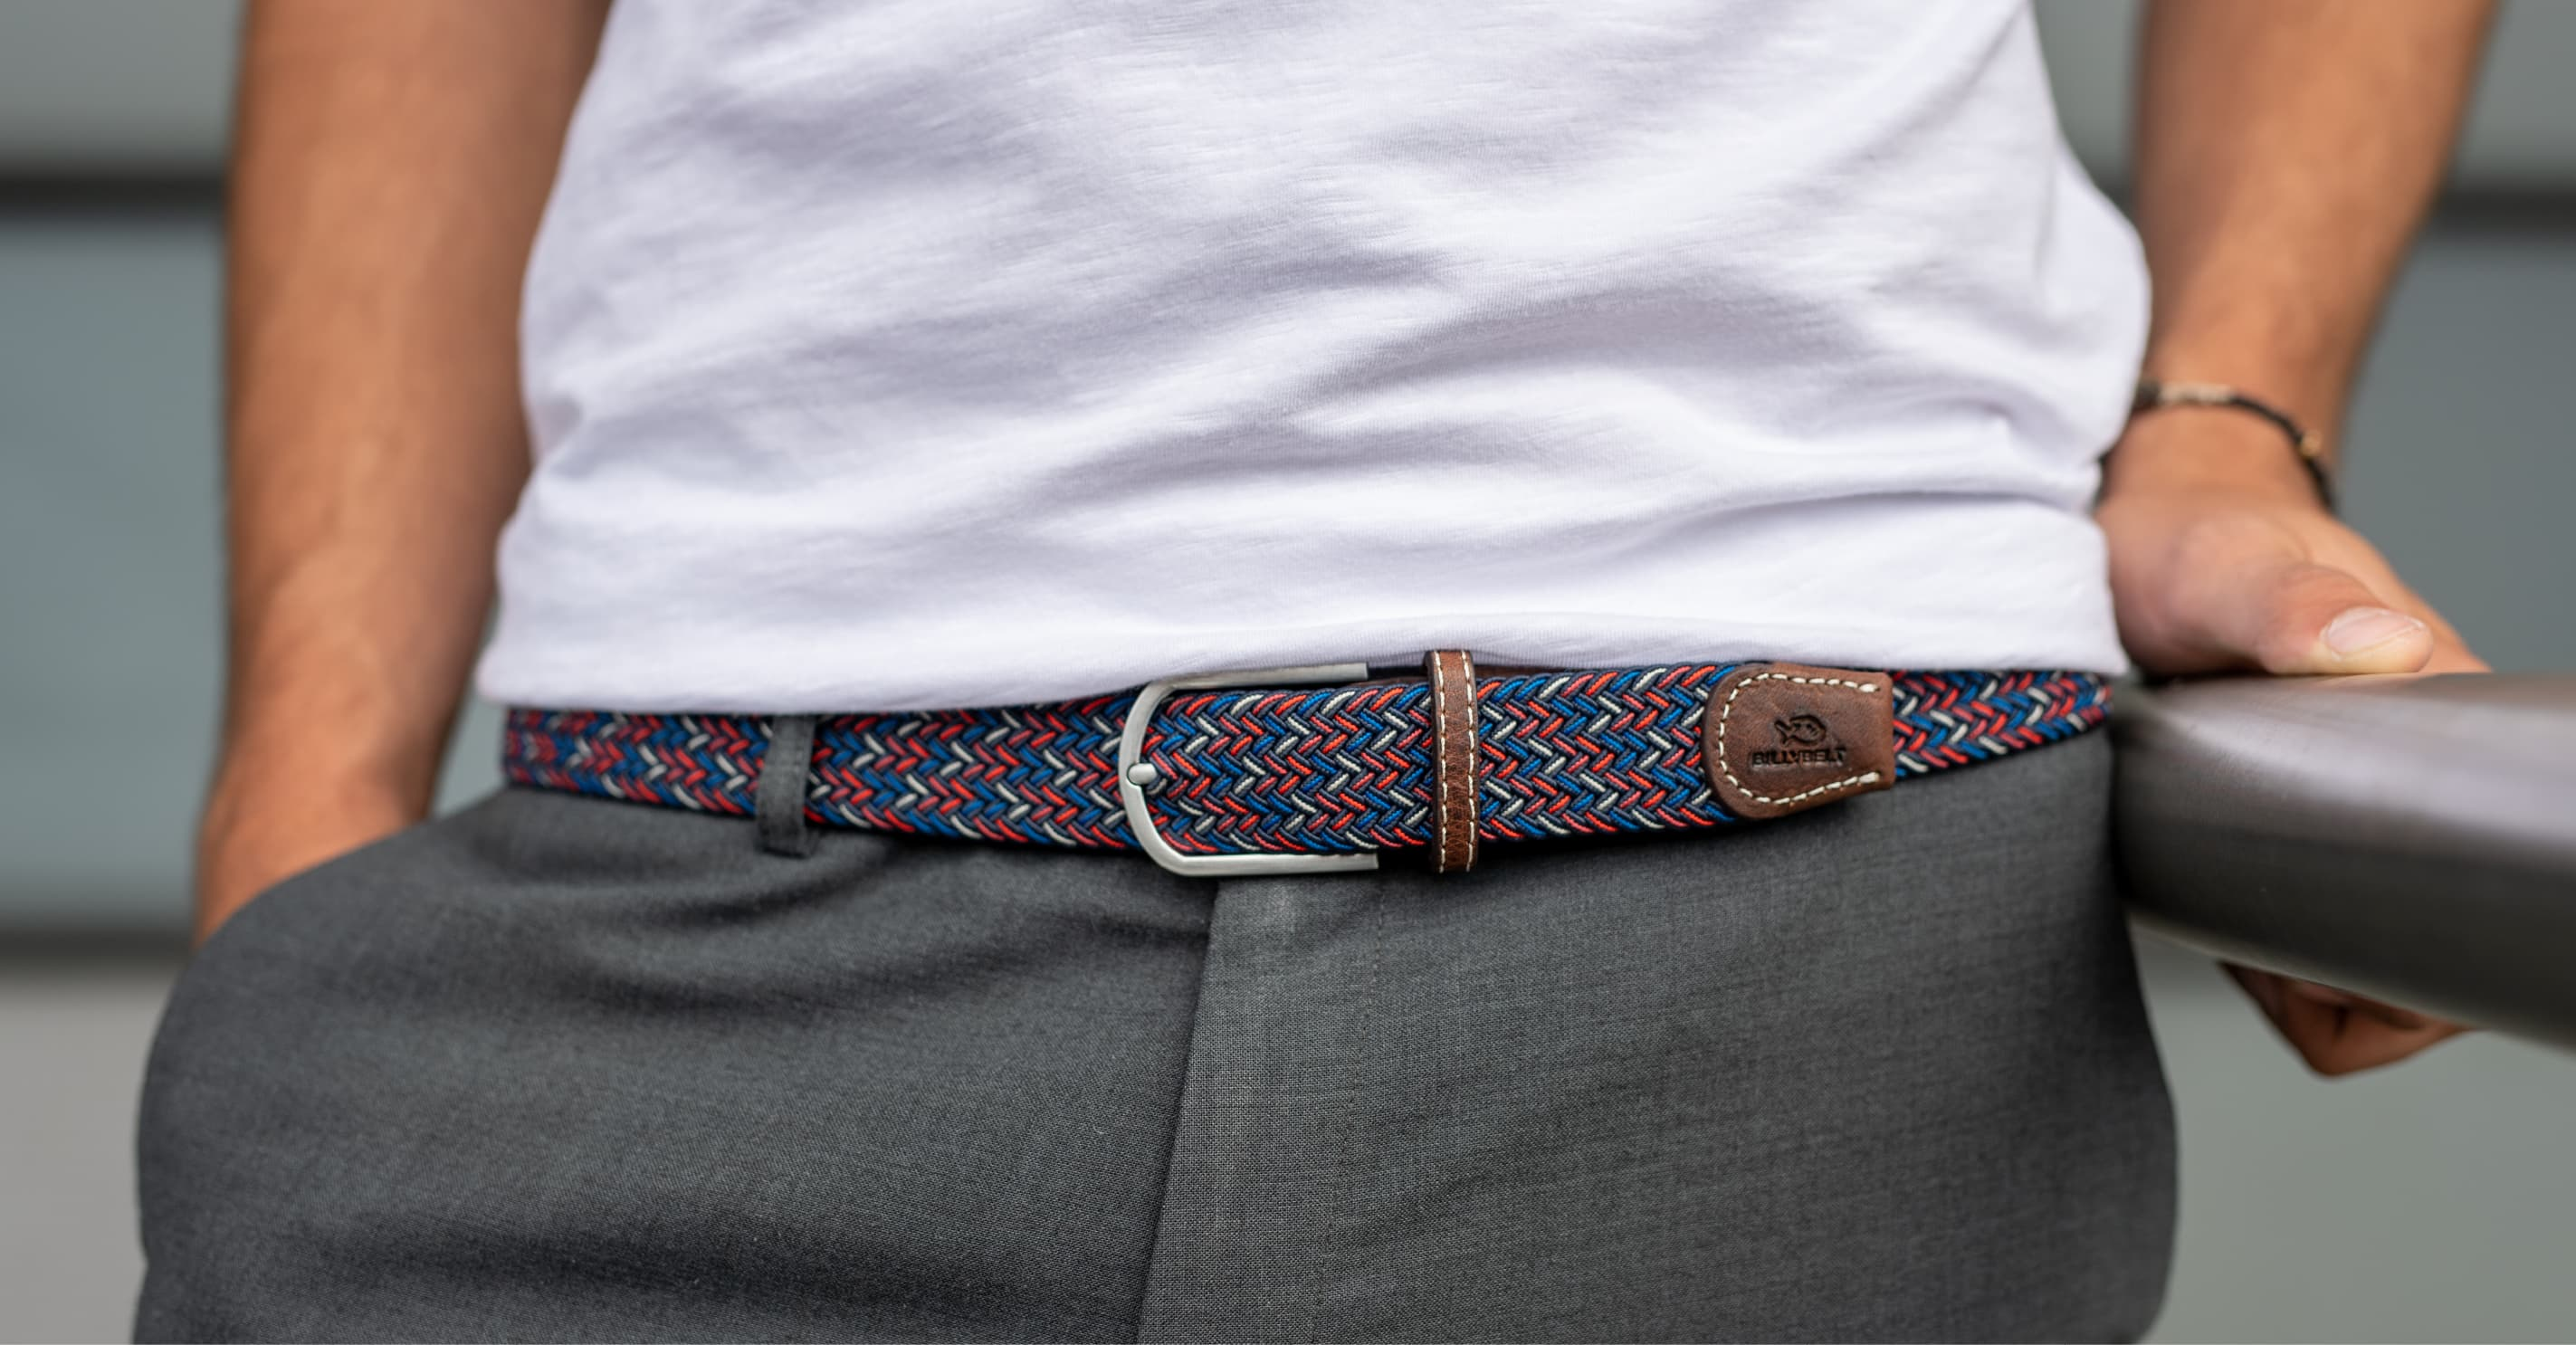 After the plain braided belts, BILLYBELT has decided to create a new collection inspired by their success: the multicoloured braided belts. More original and more colourful, these accessories are perfects for all men. Graphic, contemporary, this belts collection combines trendy and usual colours to give your style an atypical touch.  The multicoloured braided belt is comfortable to wear. It adapts to all morphologies thanks to their elasticity, and you can easily close it in the stretchy plait. All the multicoloured braided belts manufactured with real leather and with technical materials to be as more sophisticated than resistants.